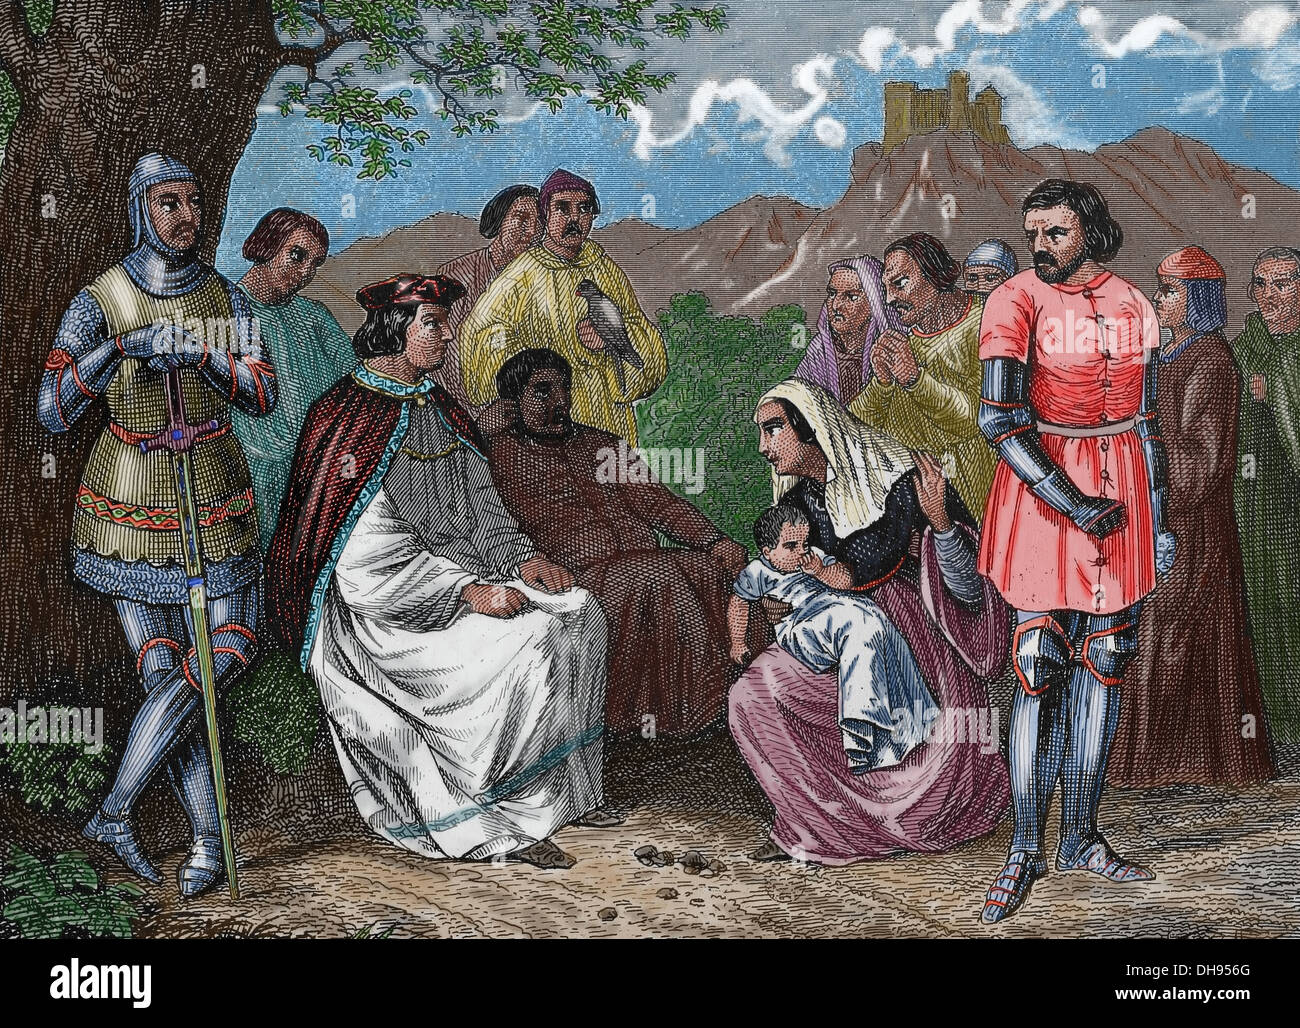 Louis IX (1214 – 1270). King of France (1226-1270). Saint Louis administering justice in the open field. Engraving. - Stock Image